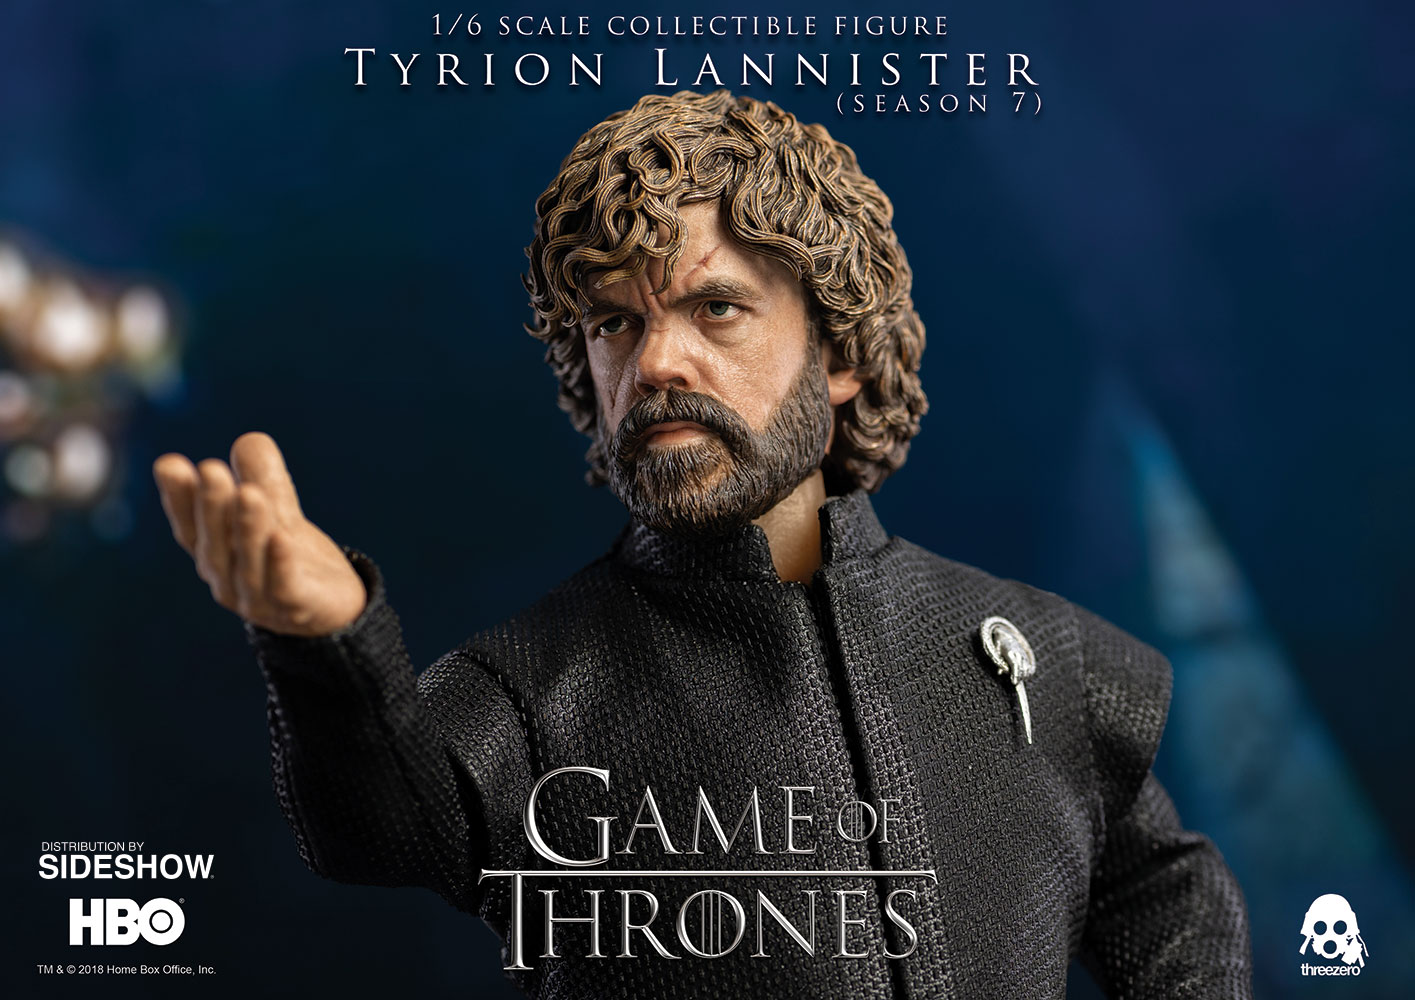 Lannister Tyrion